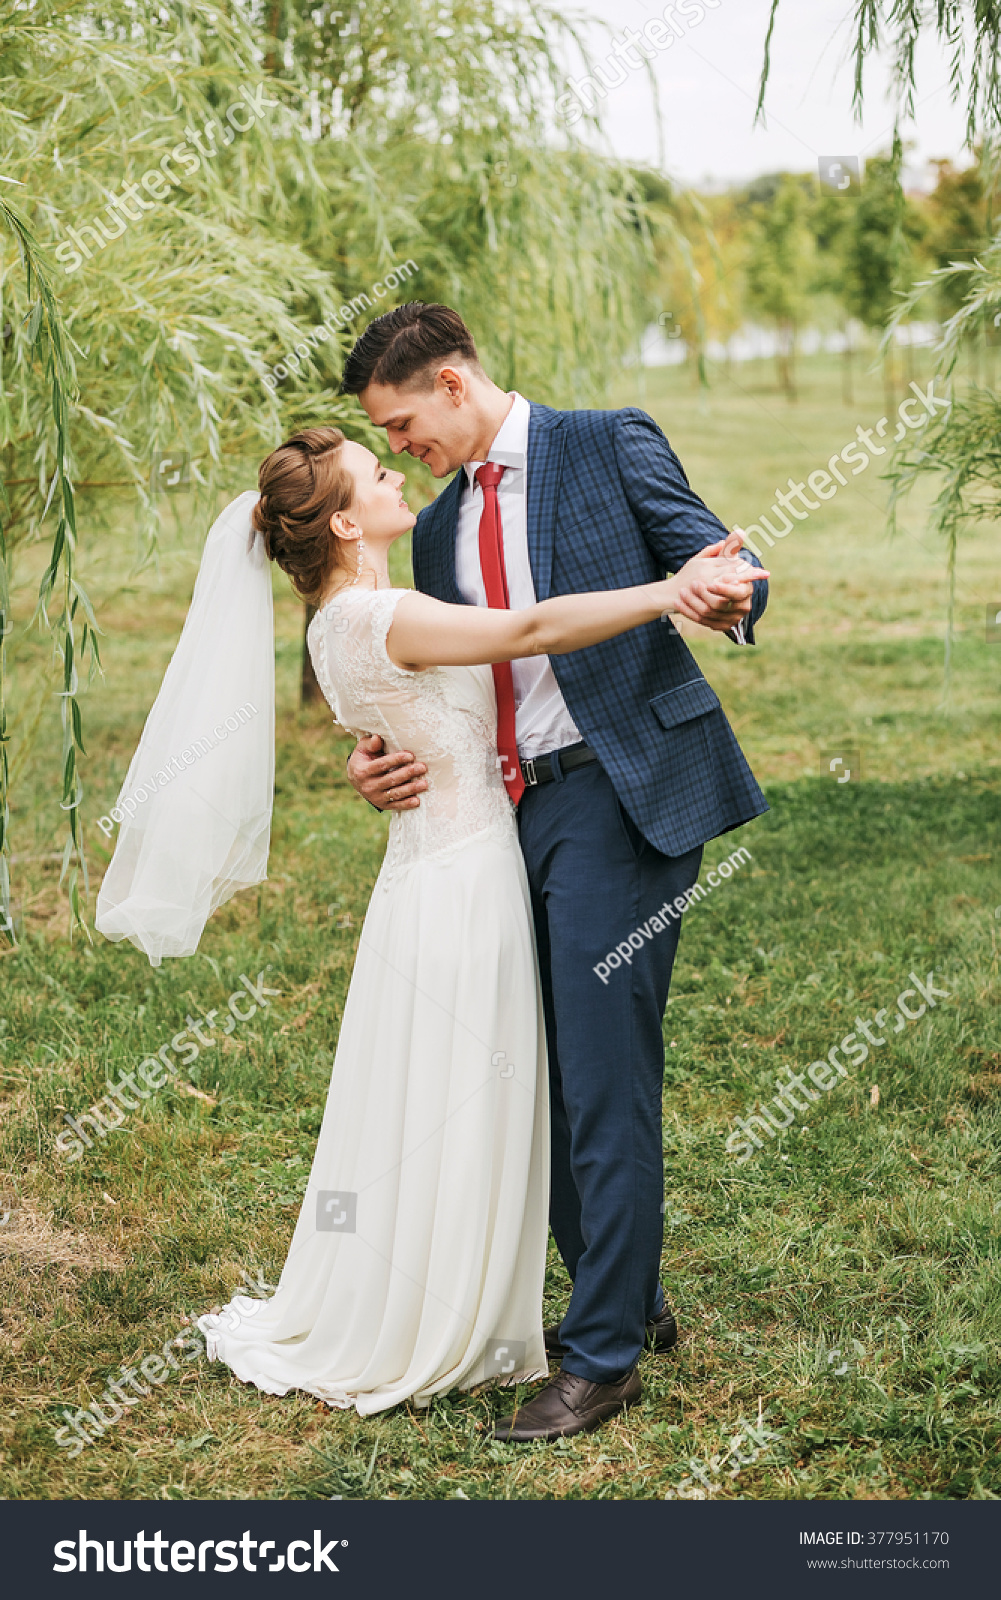 Wedding Love Relationships Marriage Smiling Cute Stock Photo Edit Now 377951170